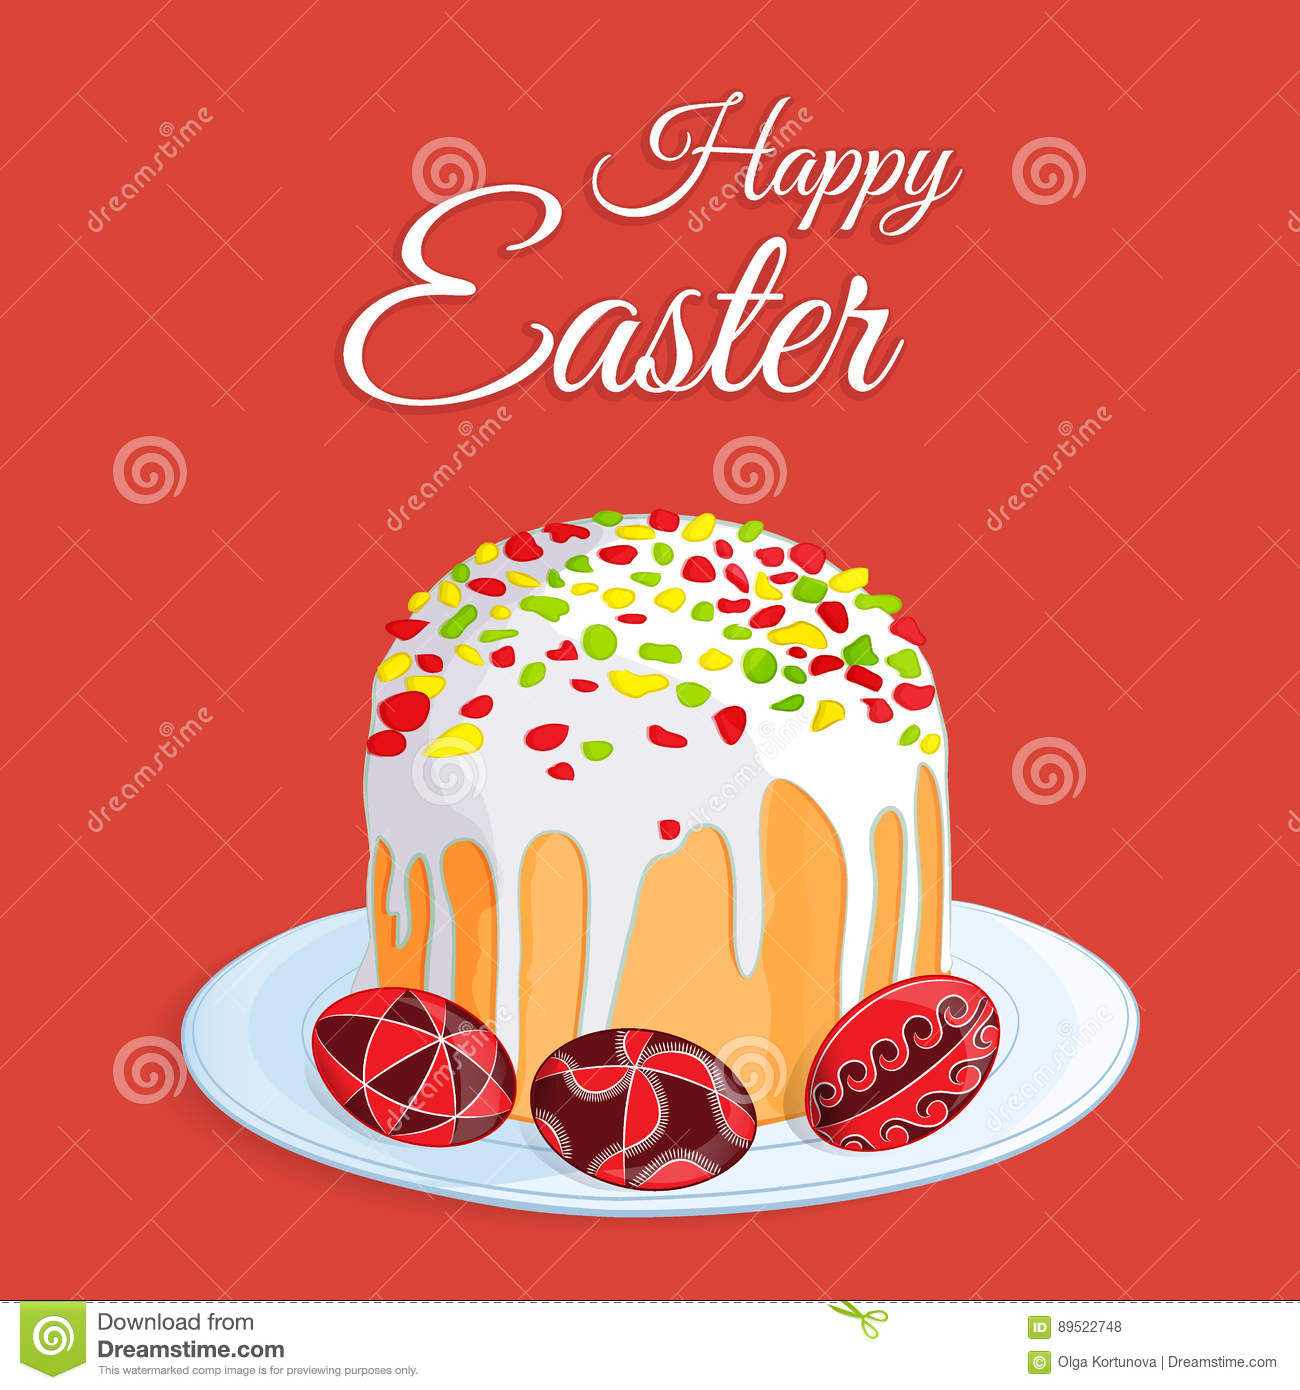 Orthodox easter festive greeting card vector cartoon illustration orthodox easter festive greeting card vector cartoon illustration of a traditional easter cake with candied m4hsunfo